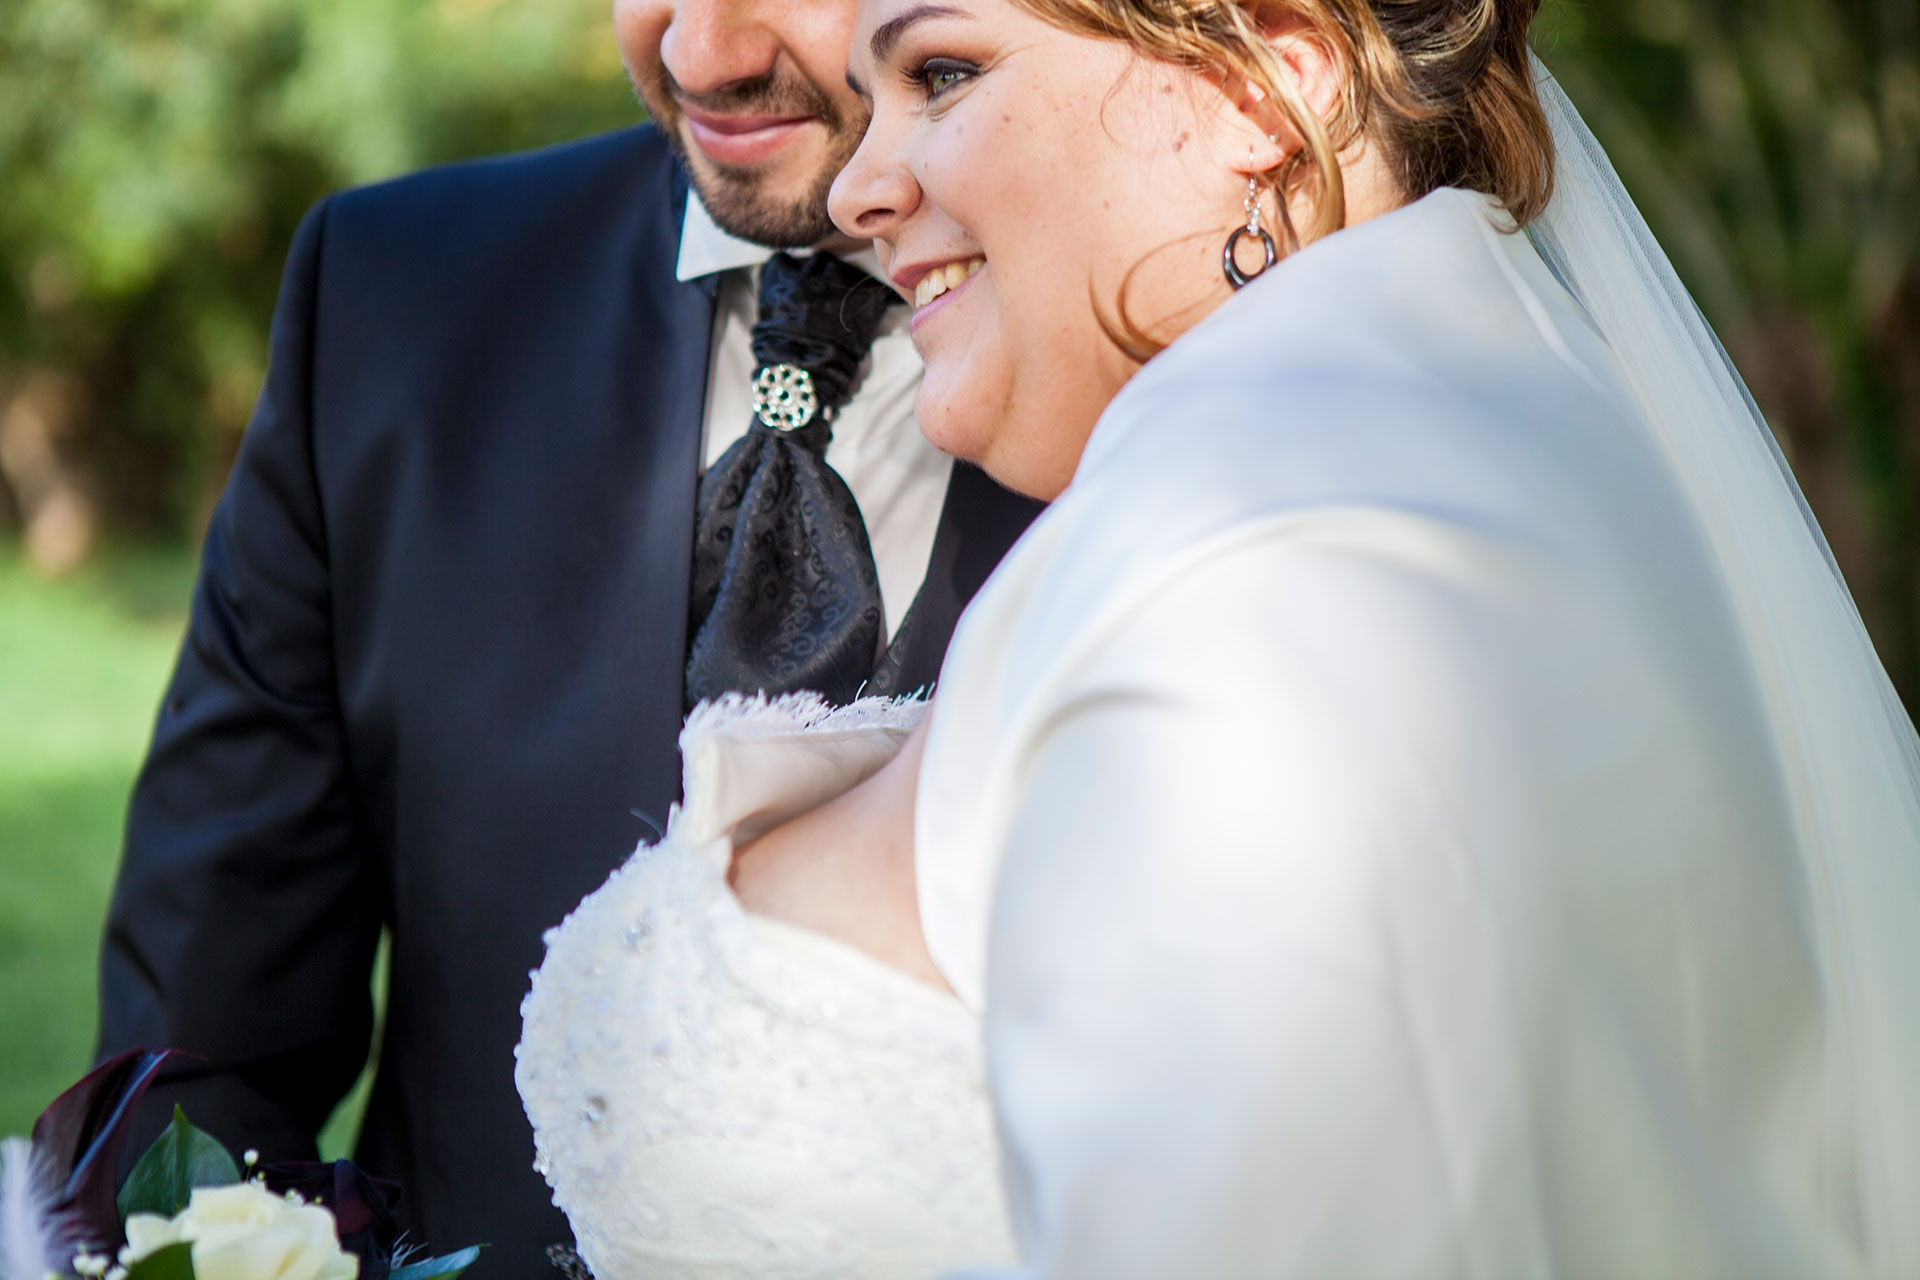 particuliers-evenements-mariages-oui-elodie&wilson-18